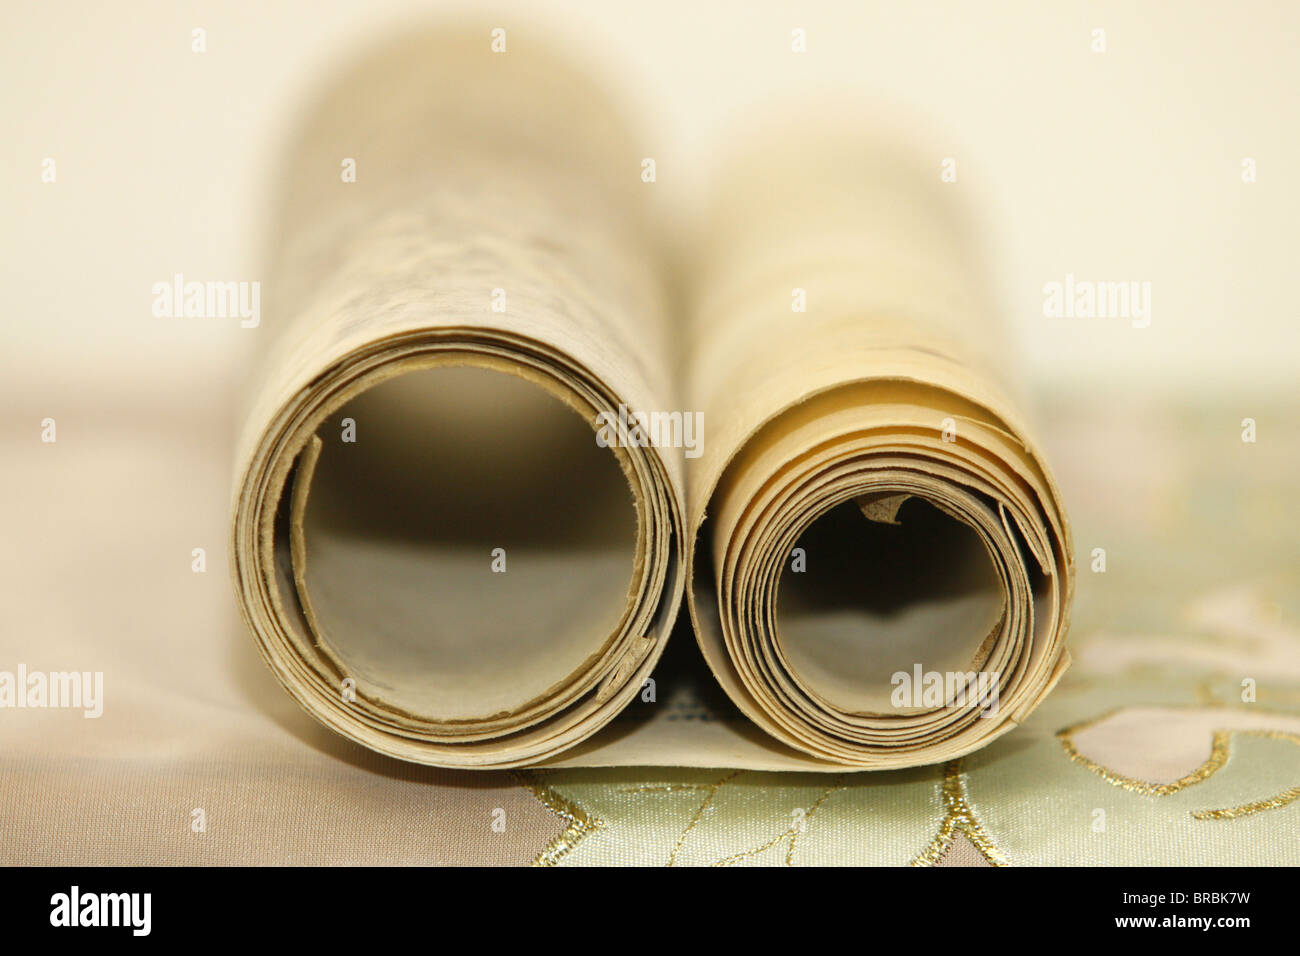 Esther Stock Photos & Esther Stock Images - Page 2 - Alamy